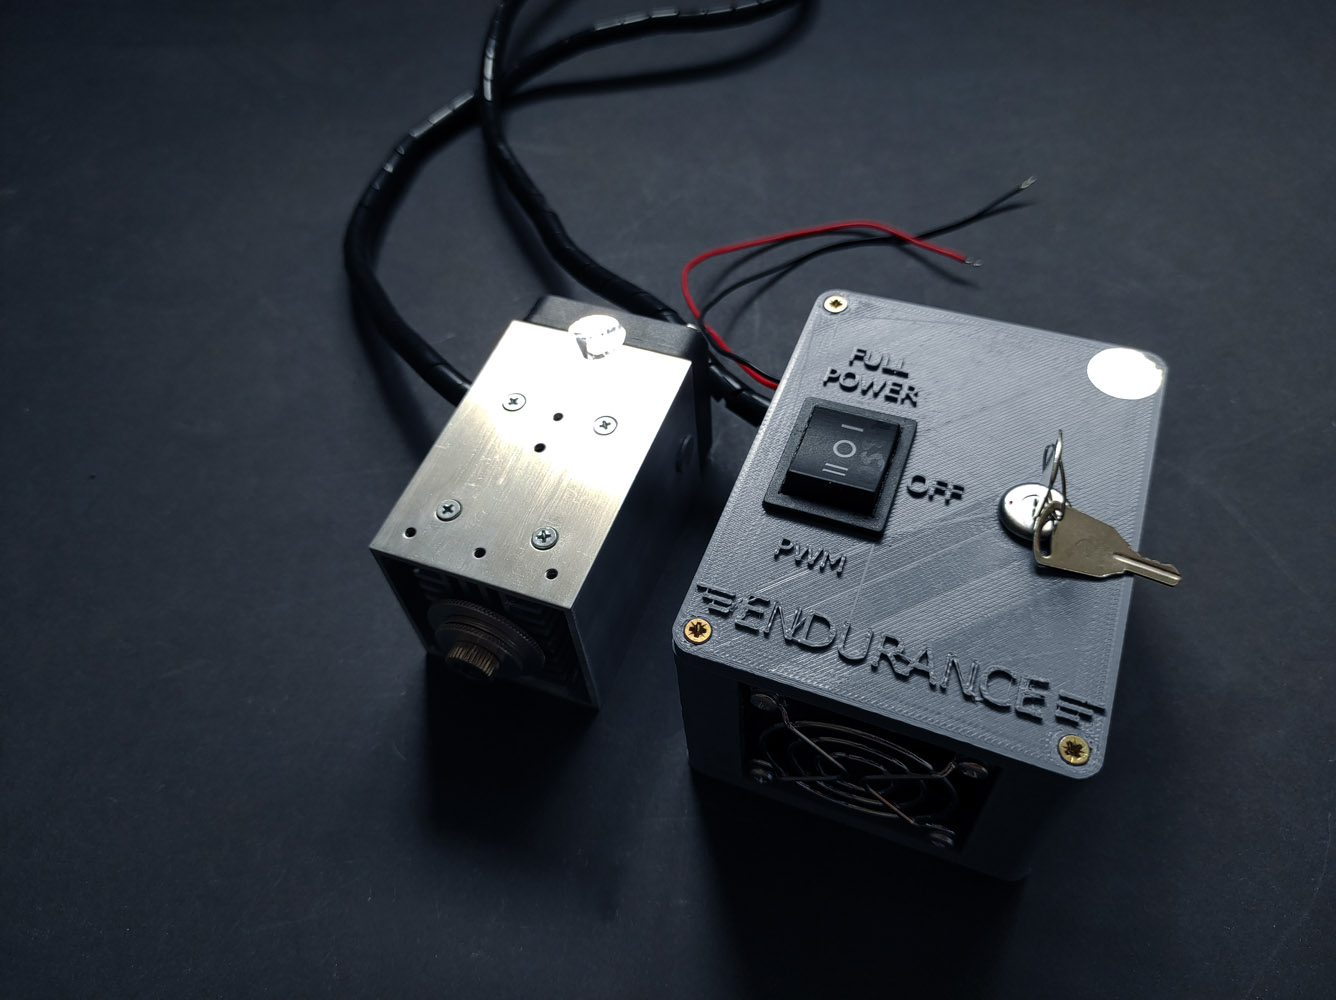 """The Endurance 10 Watt (10000 mW) laser """"Invincible"""" module (add-on) with 445 nm wavelength for any 3D printer / CNC machine"""